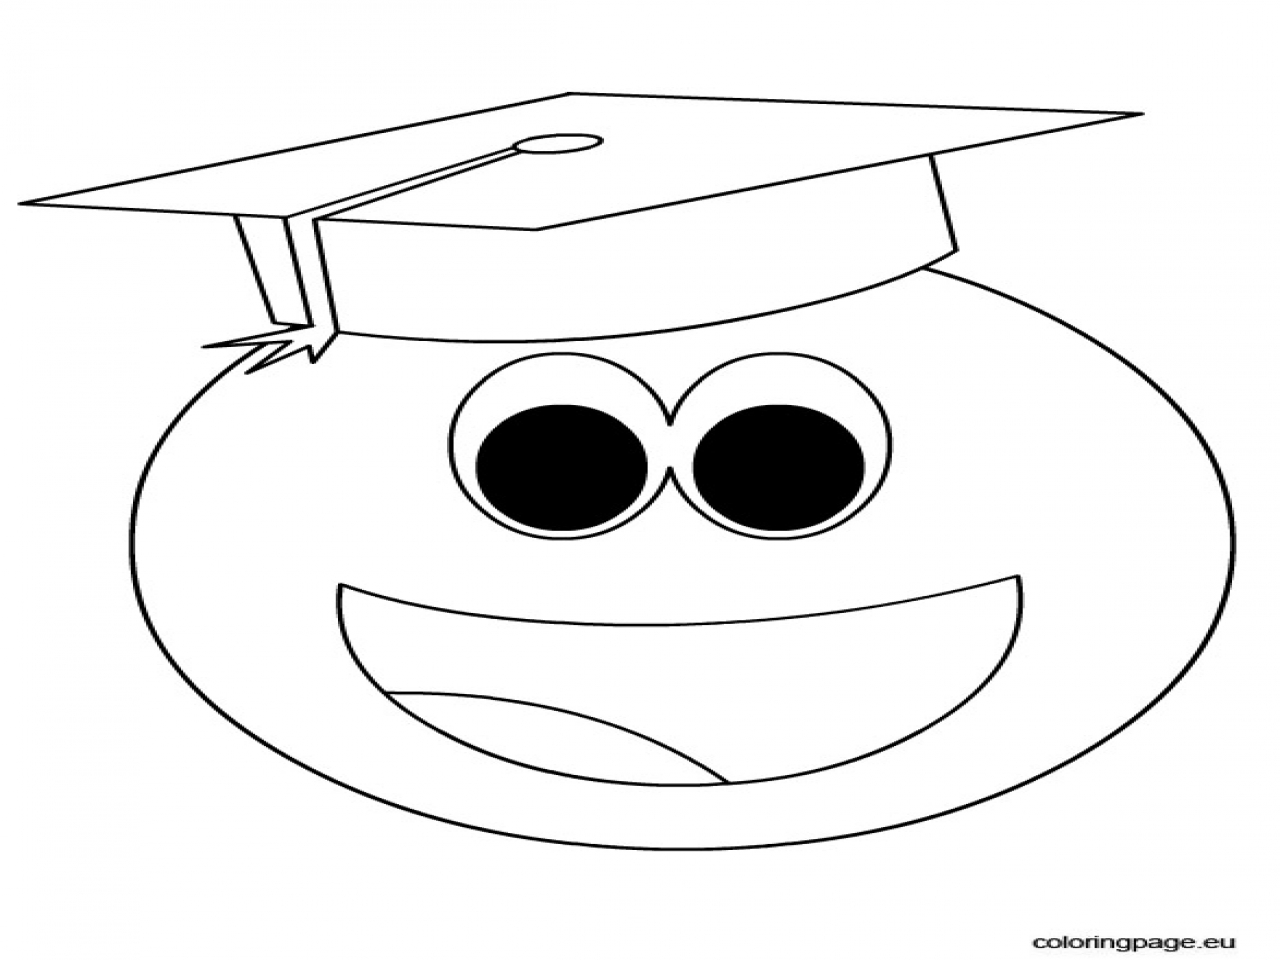 1280x960 Graduation Cap Coloring Smiley Face With Page